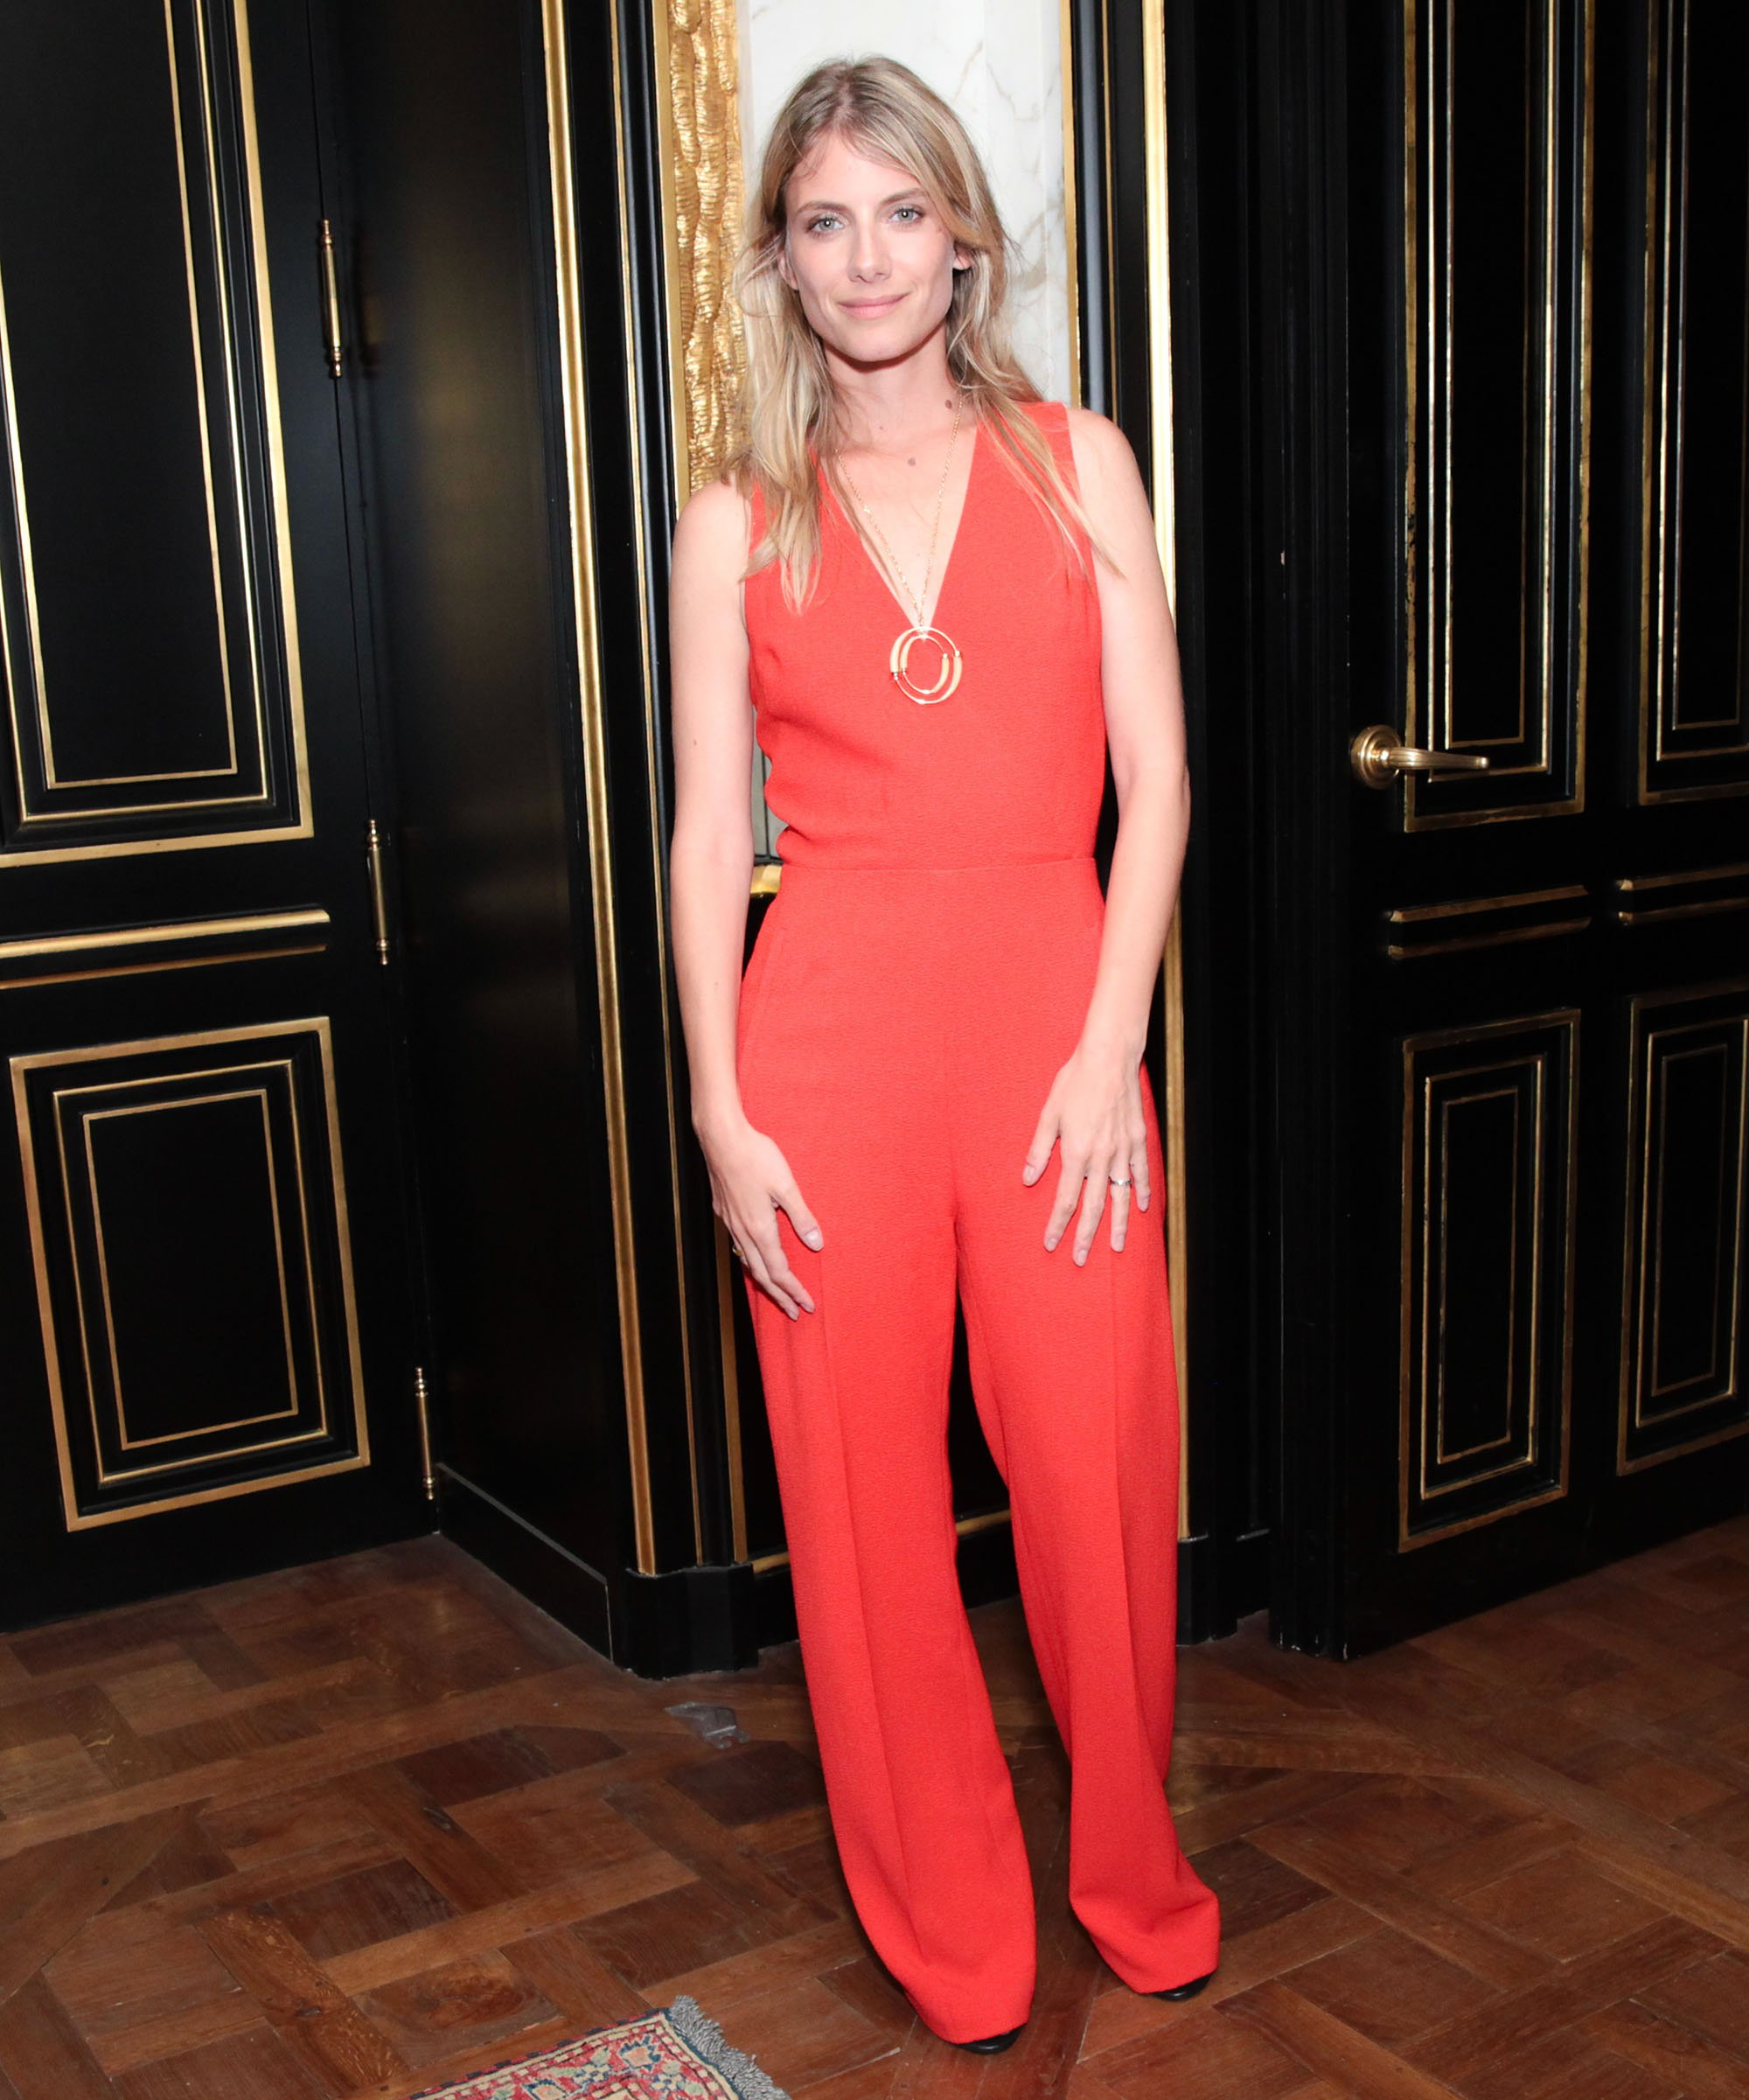 melanie-laurent- -tory-burch-at-tony-burch-paris-flagship-opening-and-after-party